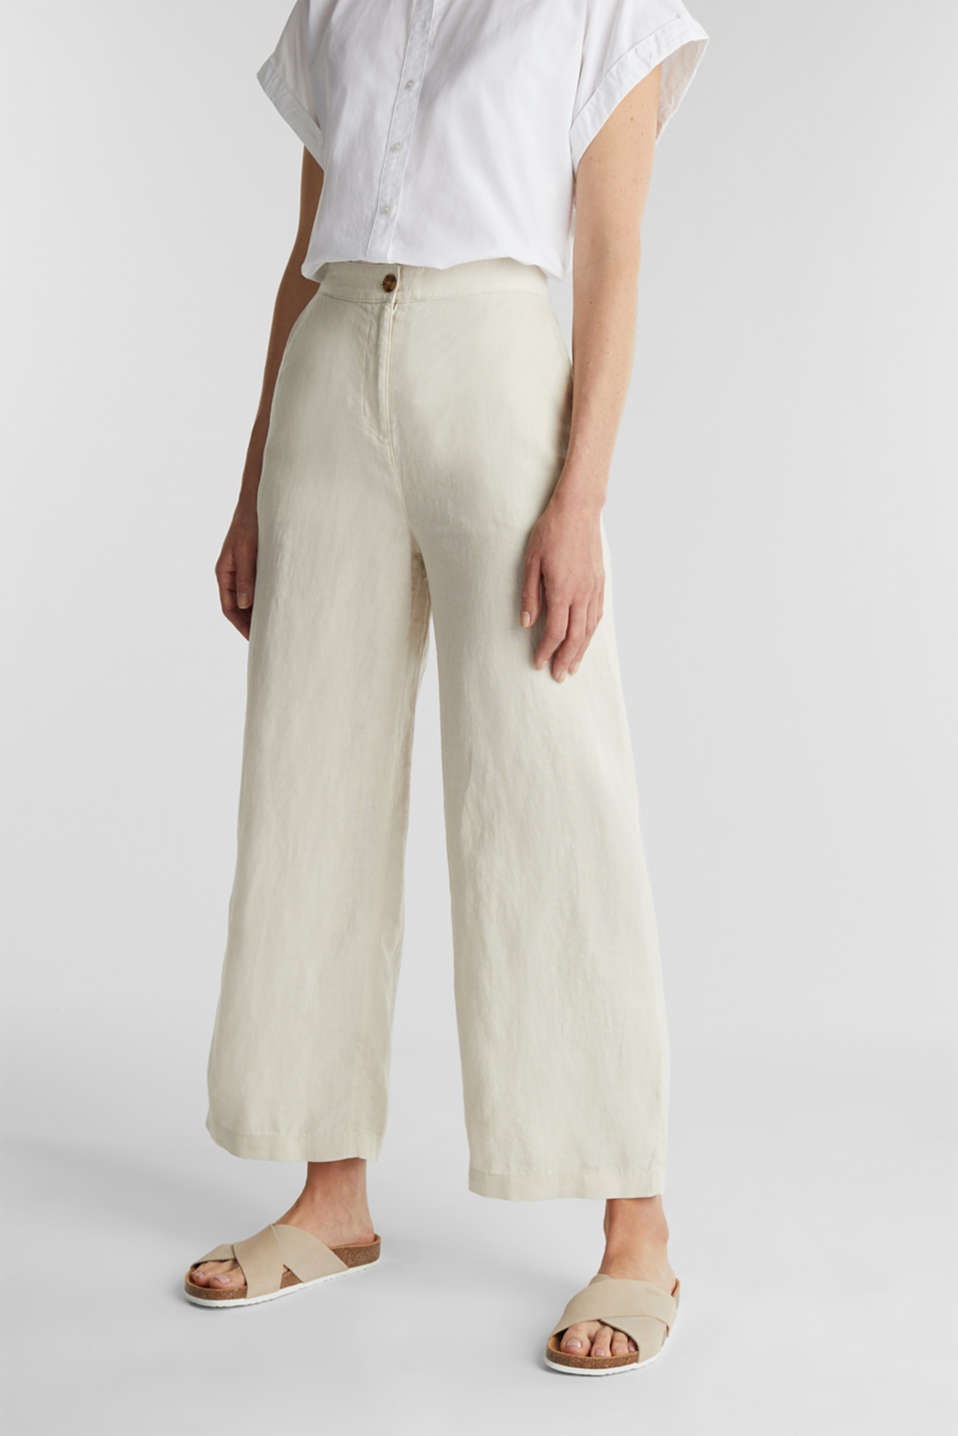 Esprit - Made of linen: basic culottes